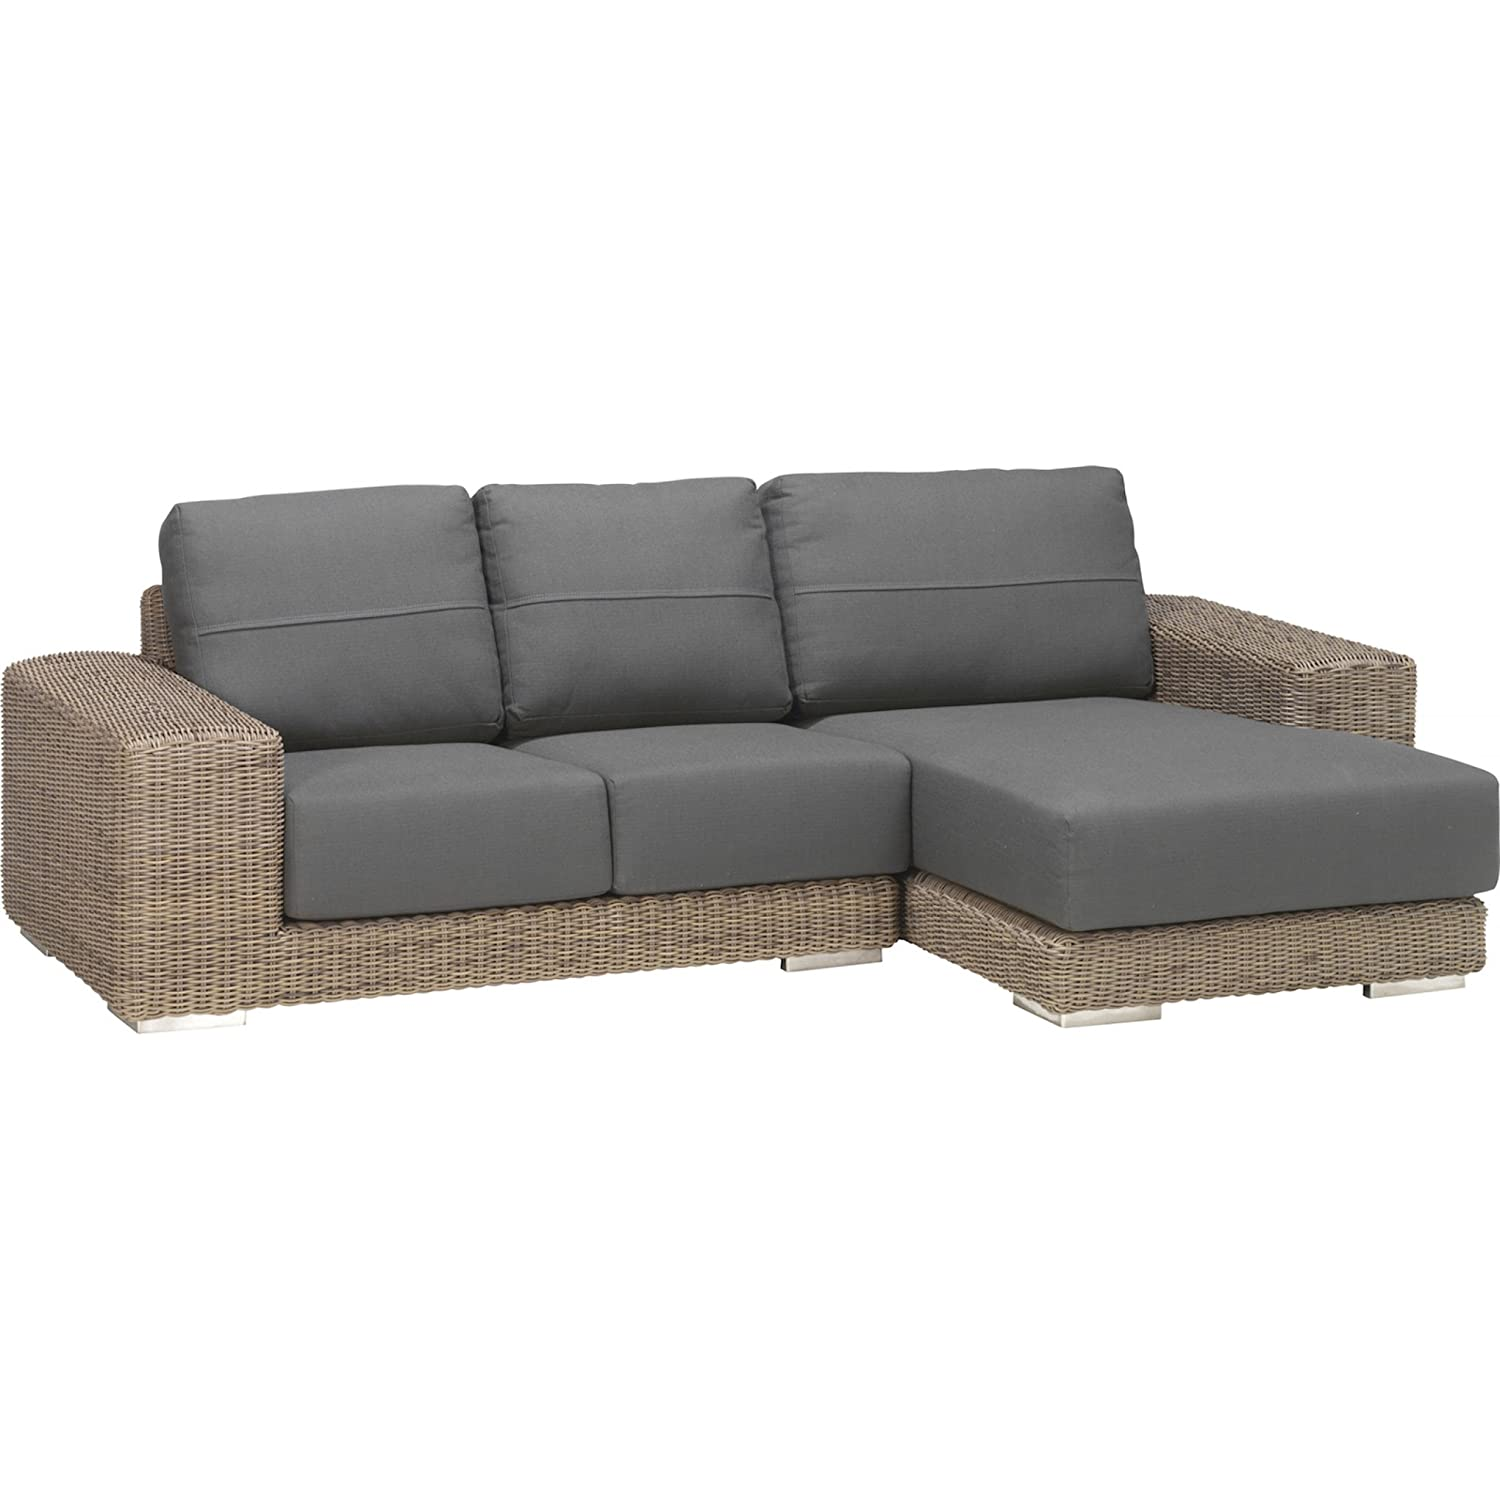 4Seasons Outdoor Kingston 2-teilige Loungegruppe Polyrattan pure inkl Kissen